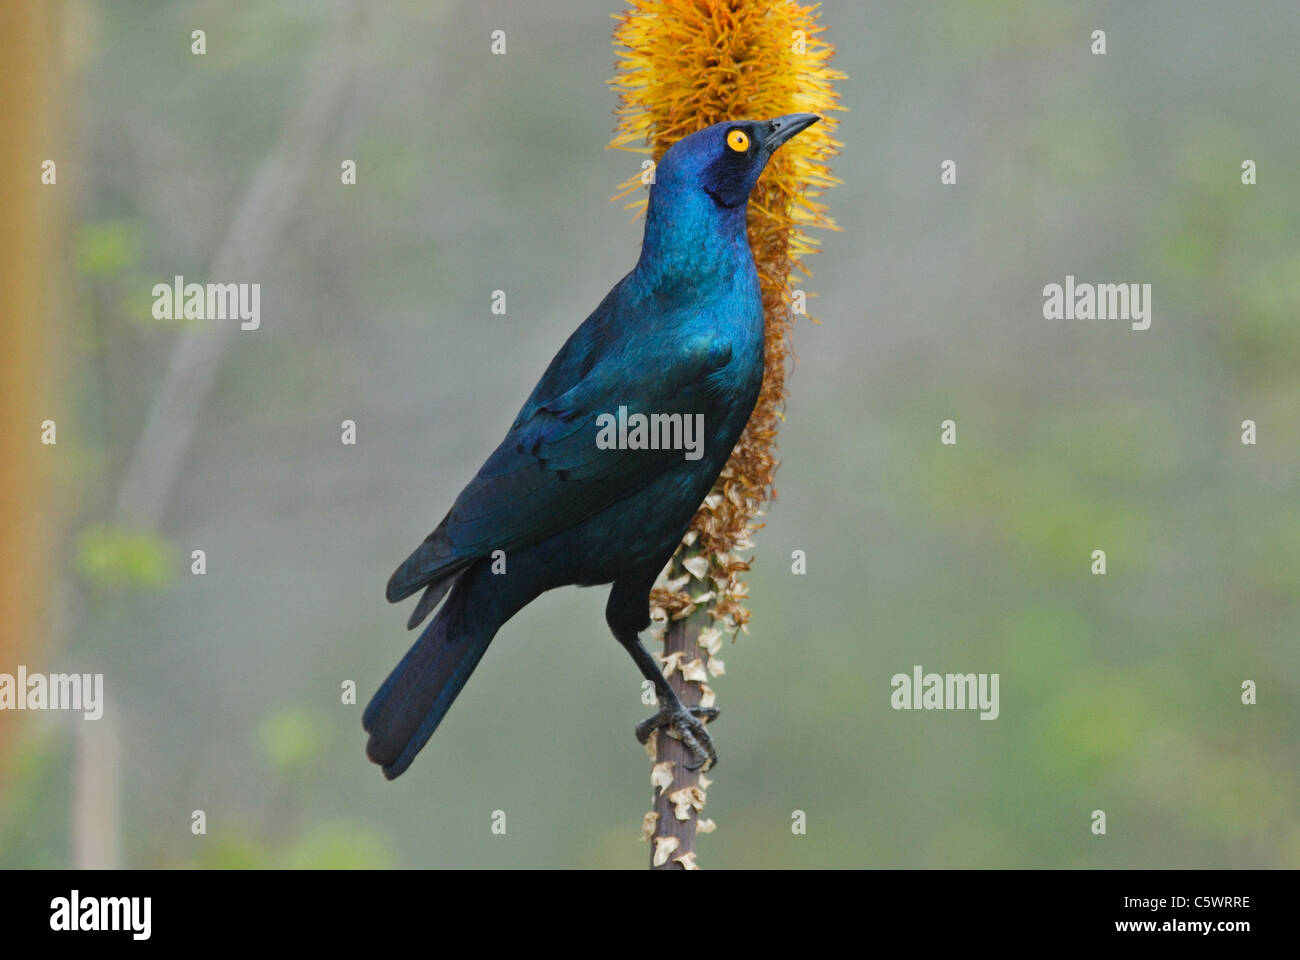 Greater Blue-eared Starling (Lamprotornis chalybaeus) in Kruger National Park, South Africa. July 2010. - Stock Image